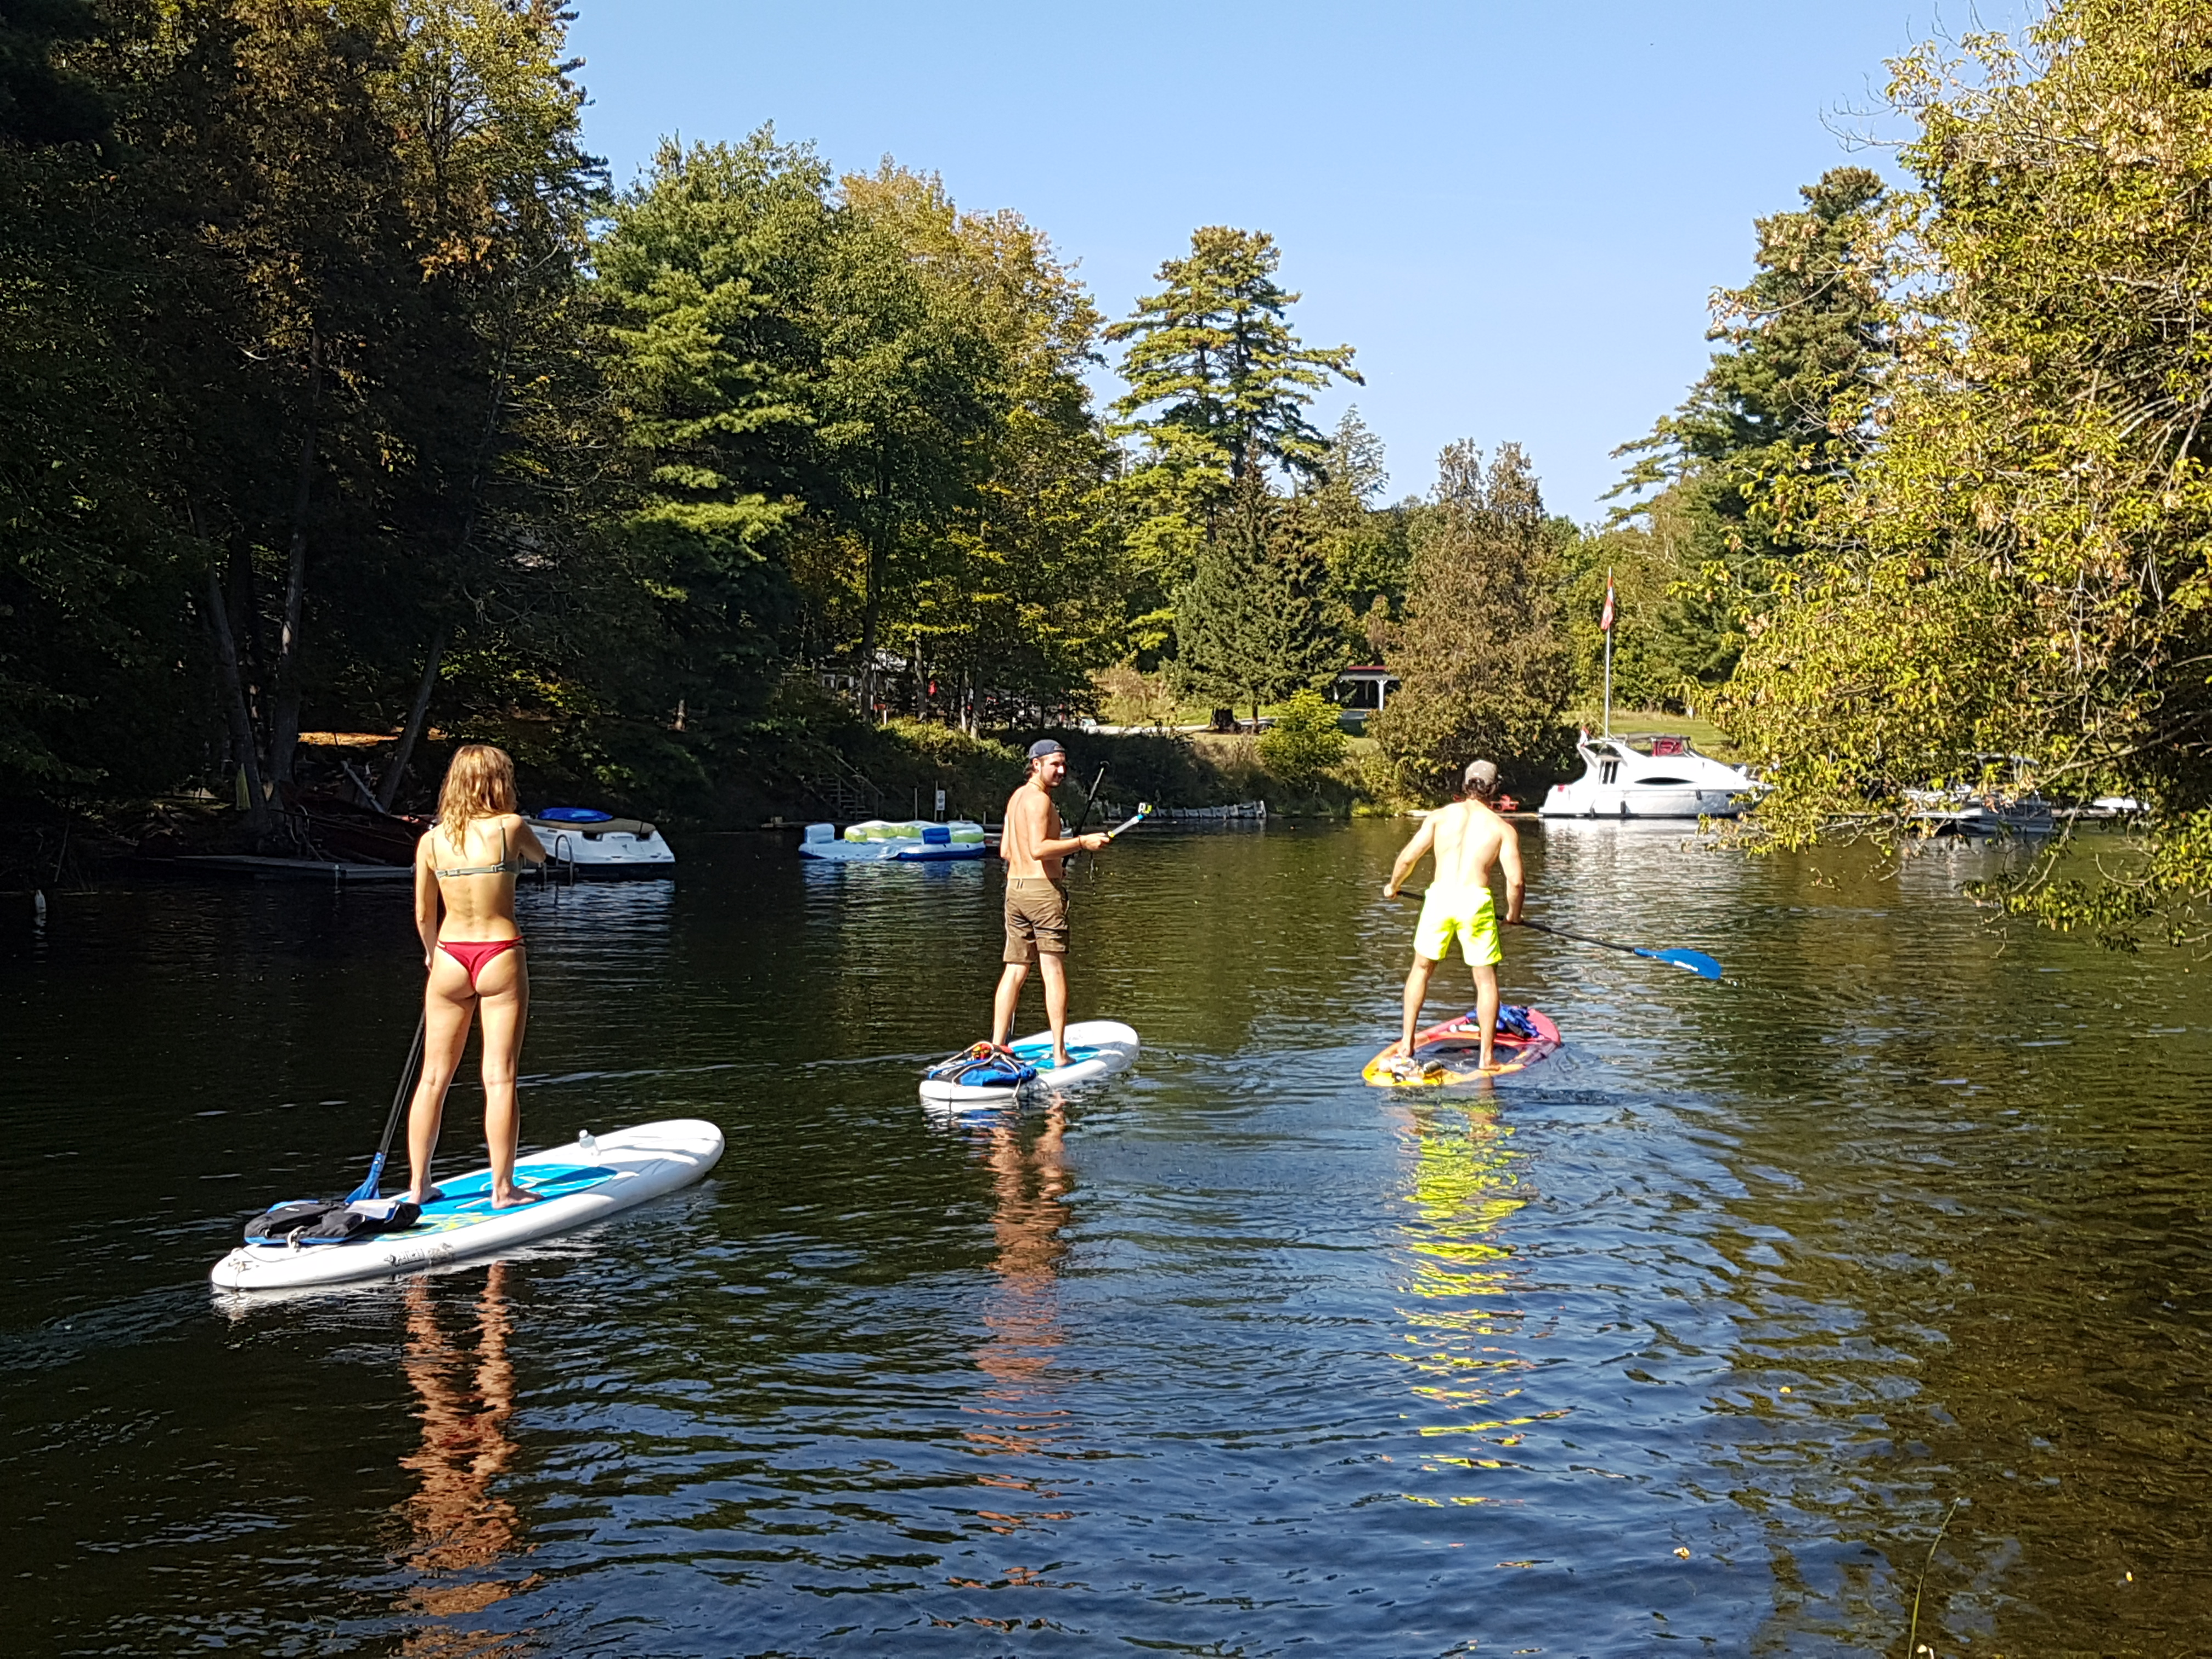 Image of three people on paddleboards.